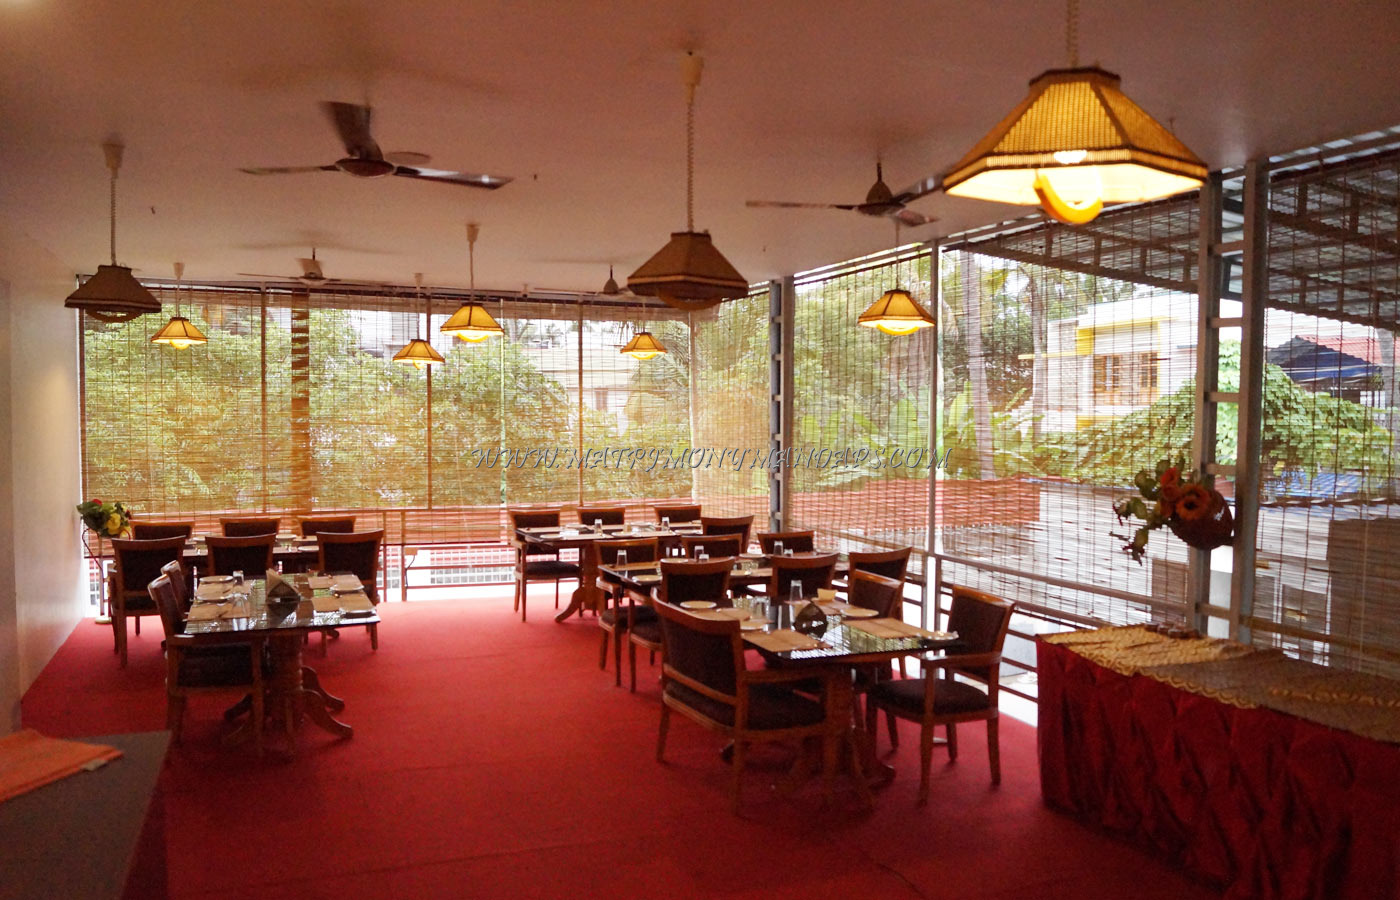 Find the availability of the SPS Kingsway Open Restaurant in Pazhavangadi, Trivandrum and avail special offers